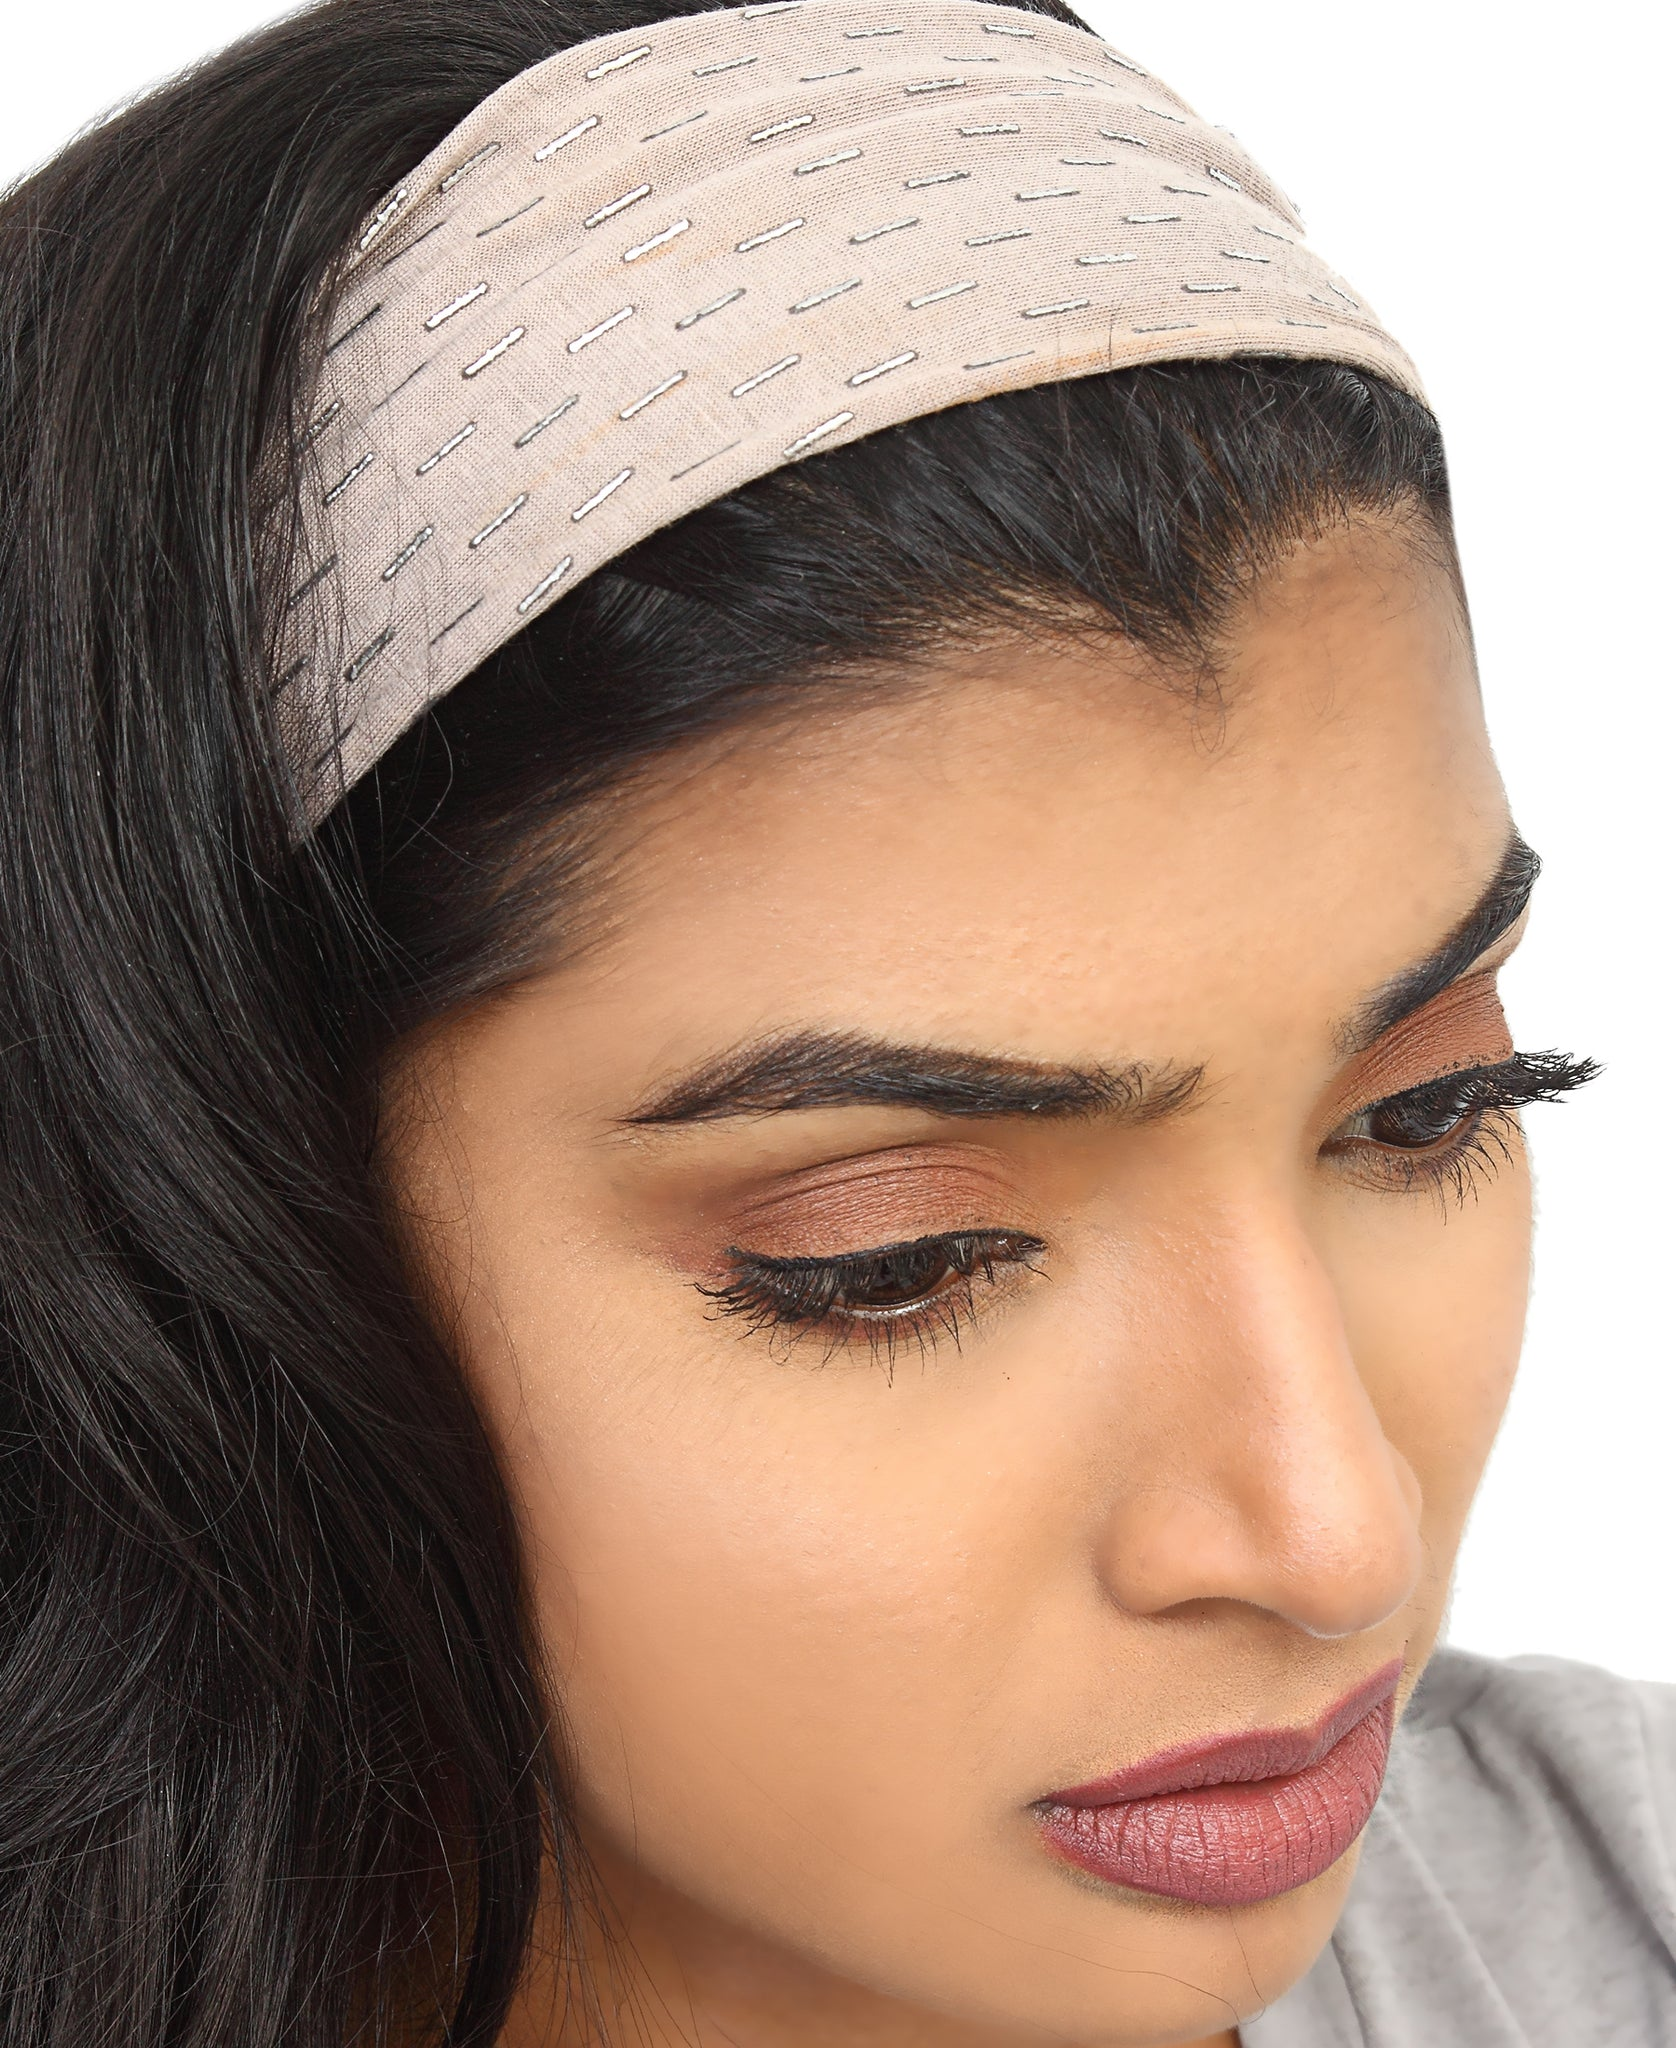 Fashion Headband - Beige